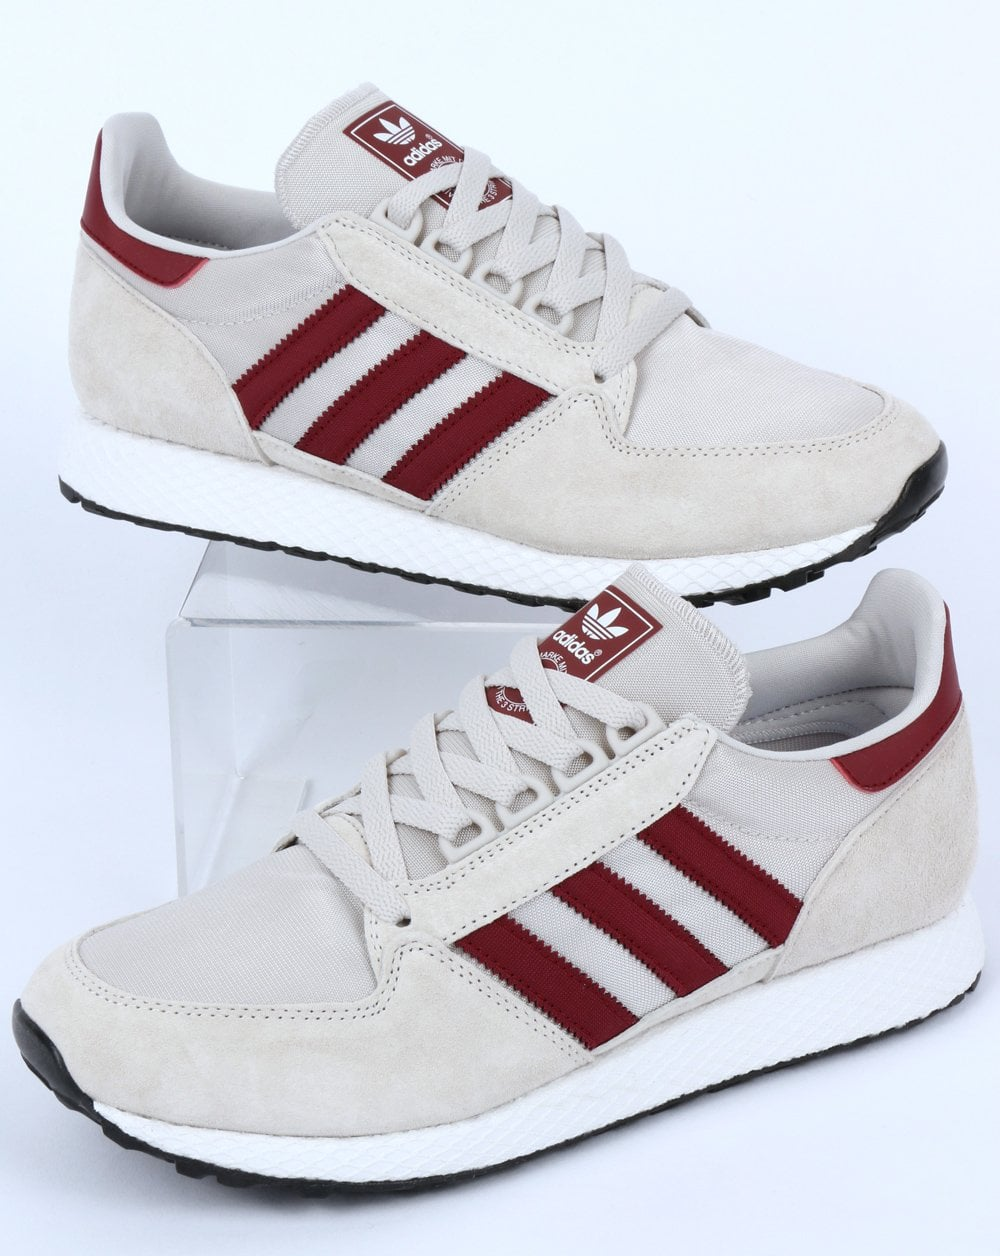 Adidas Forest Grove Trainers Chalk WhiteBurgundy